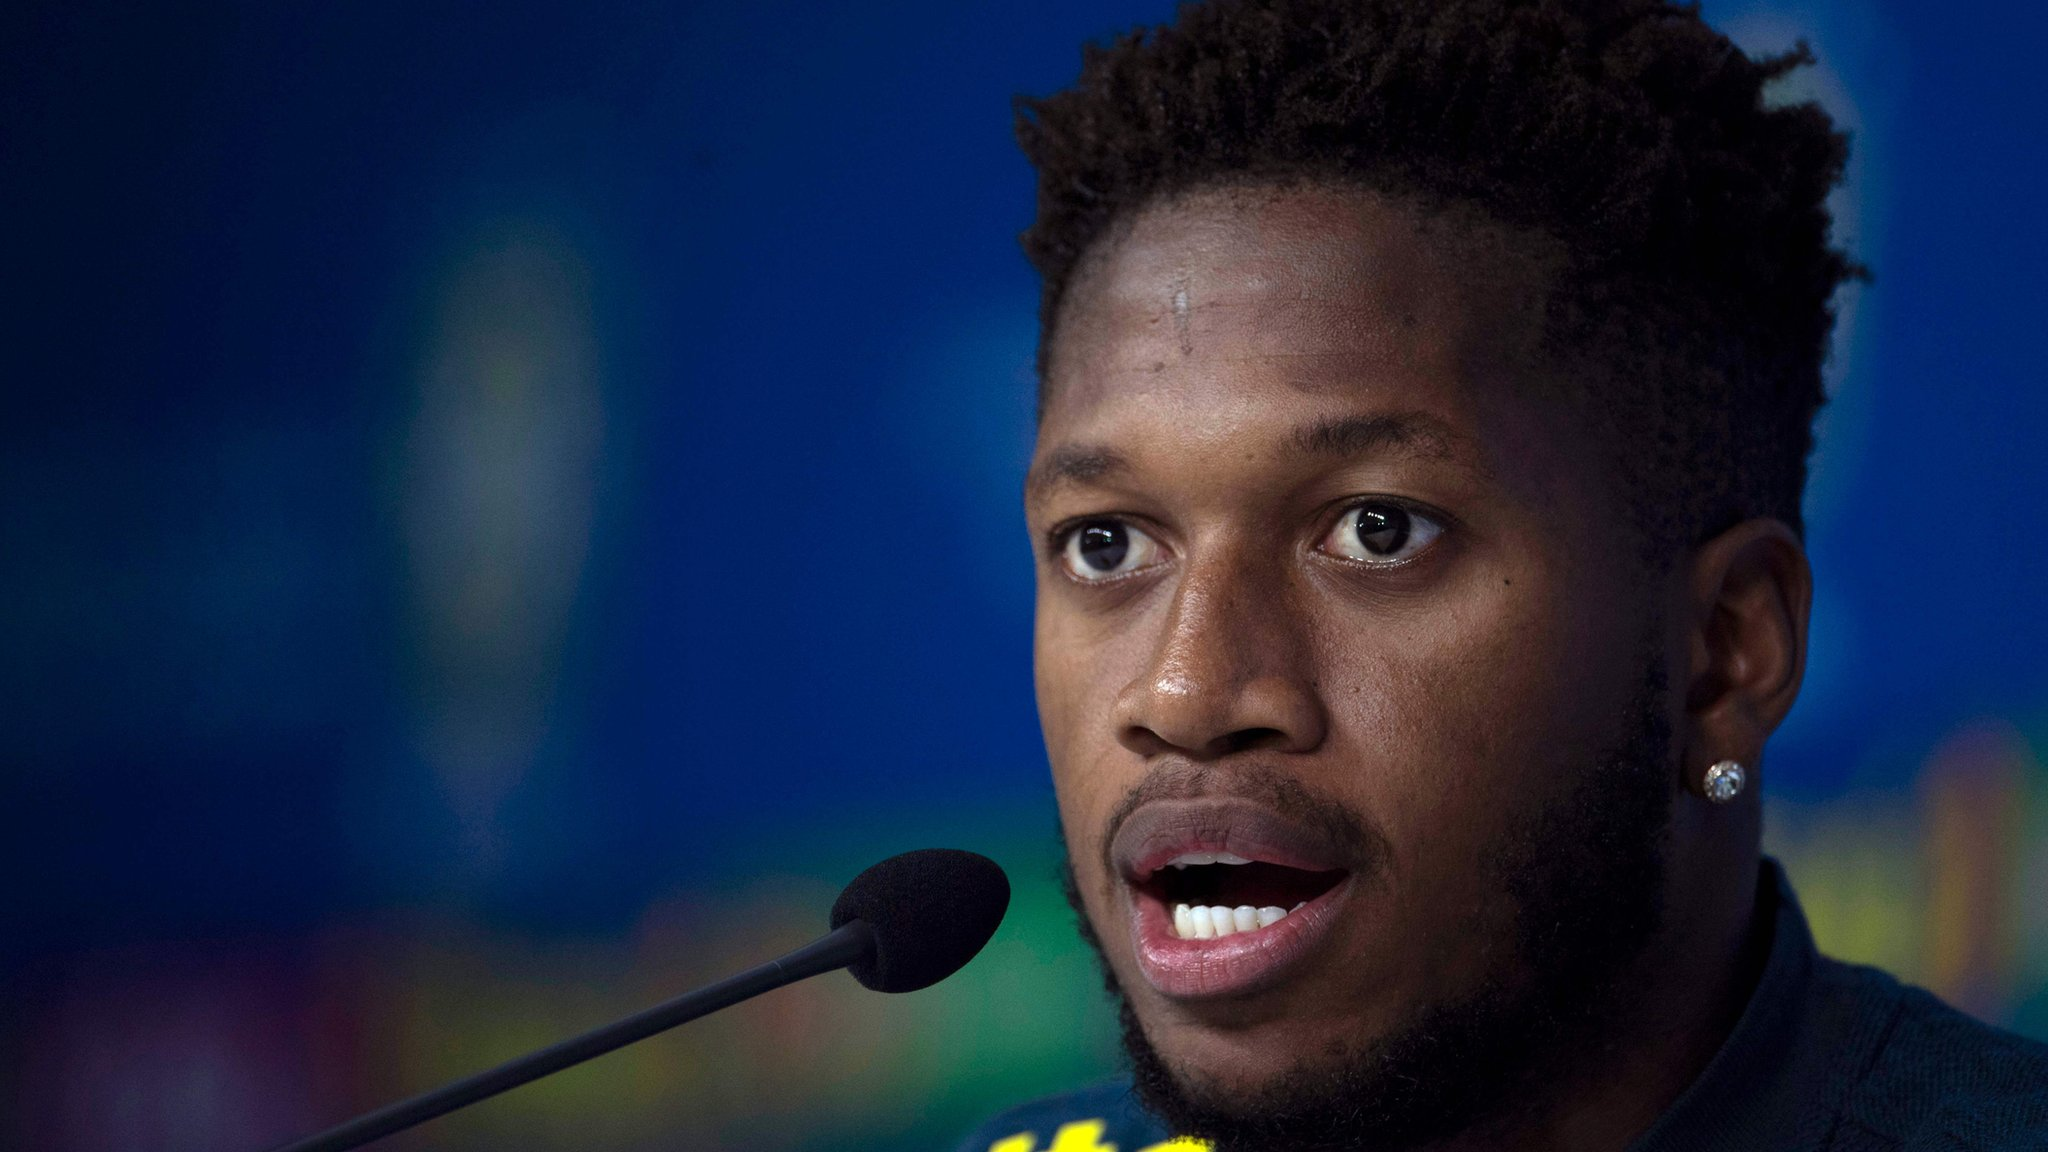 Both Manchester clubs interested in me, says Brazil star Fred